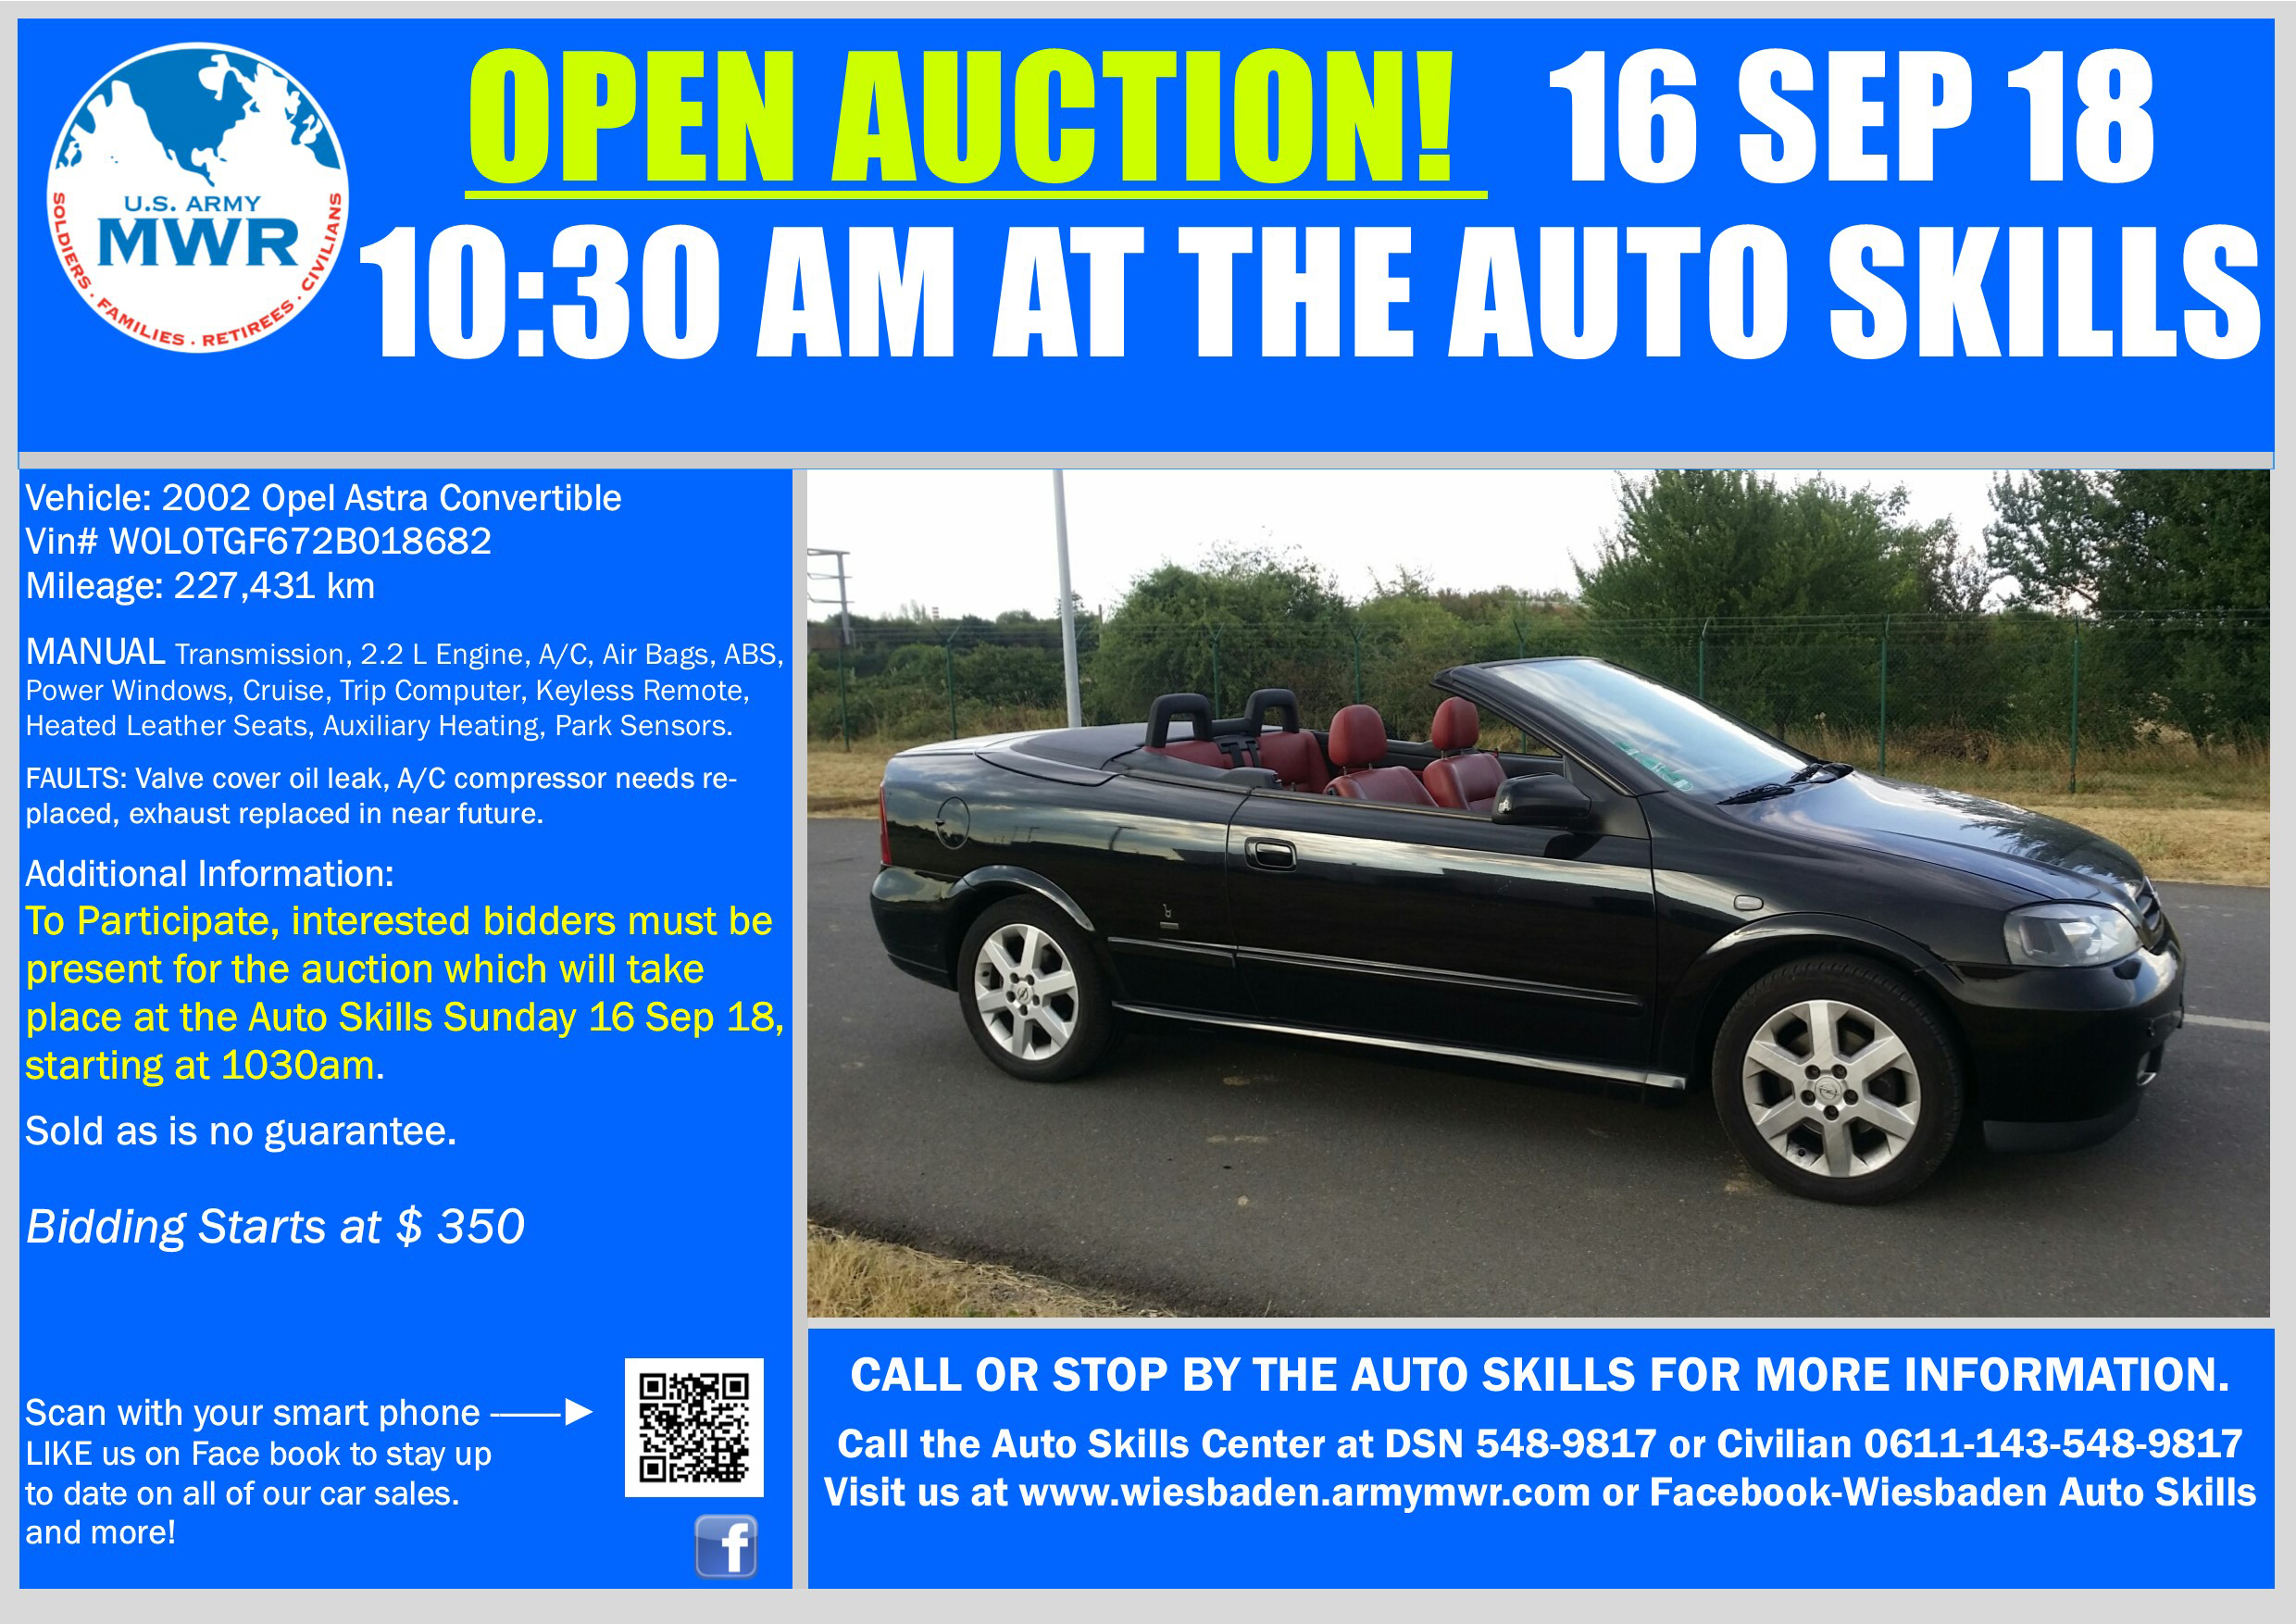 Sale Opel Astra  16 Sep 18 Open Auction.jpg